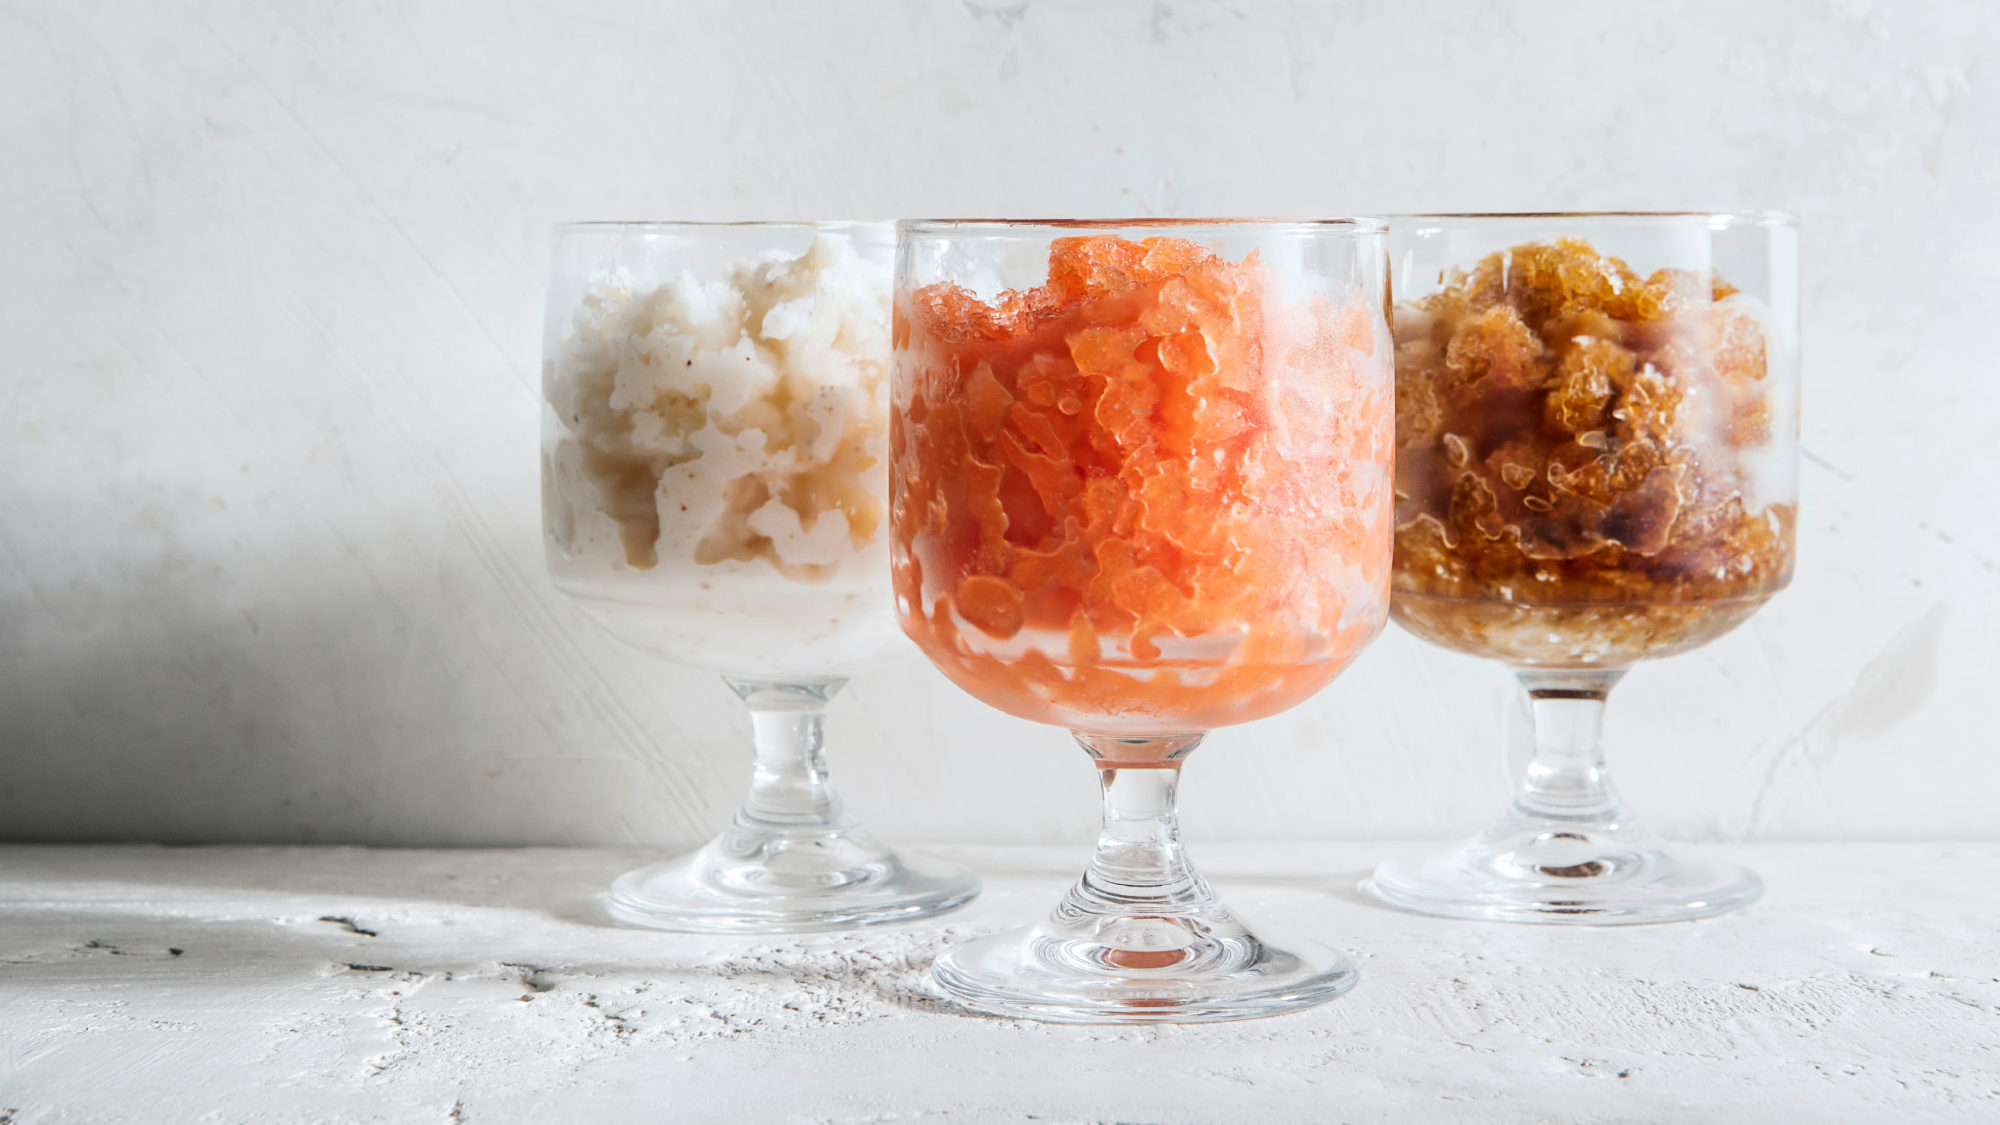 Article-Coffee-Almond-Peach-Granita-Dessert-Recipe6